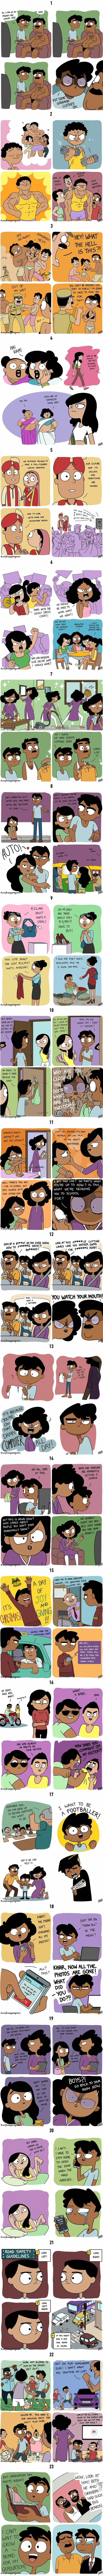 What it's like growing up in an Indian family